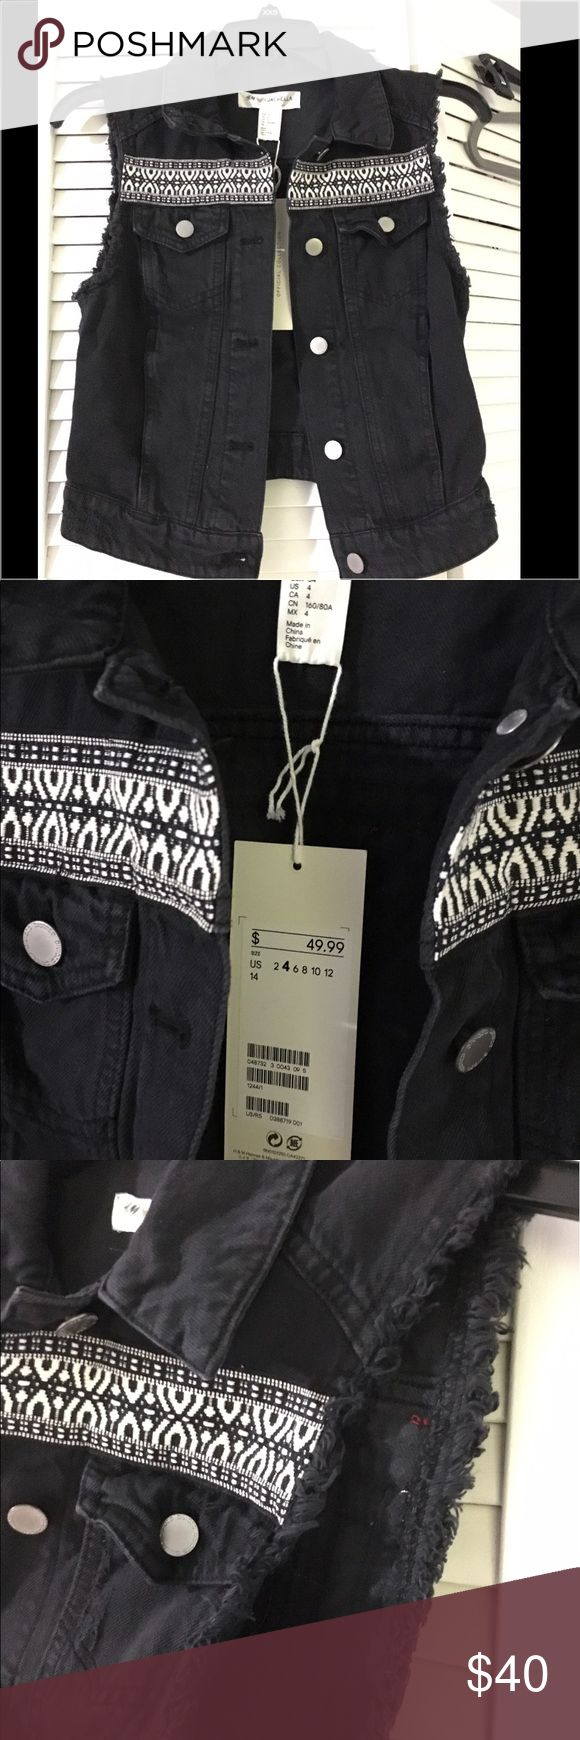 Coachella inspired black denim vest by H&M This Coachella inspired black denim vest is the perfect addition to any bohemian style closet! Very light weight and bright with colors, this piece can be worn as a statement year around Jackets & Coats Vests